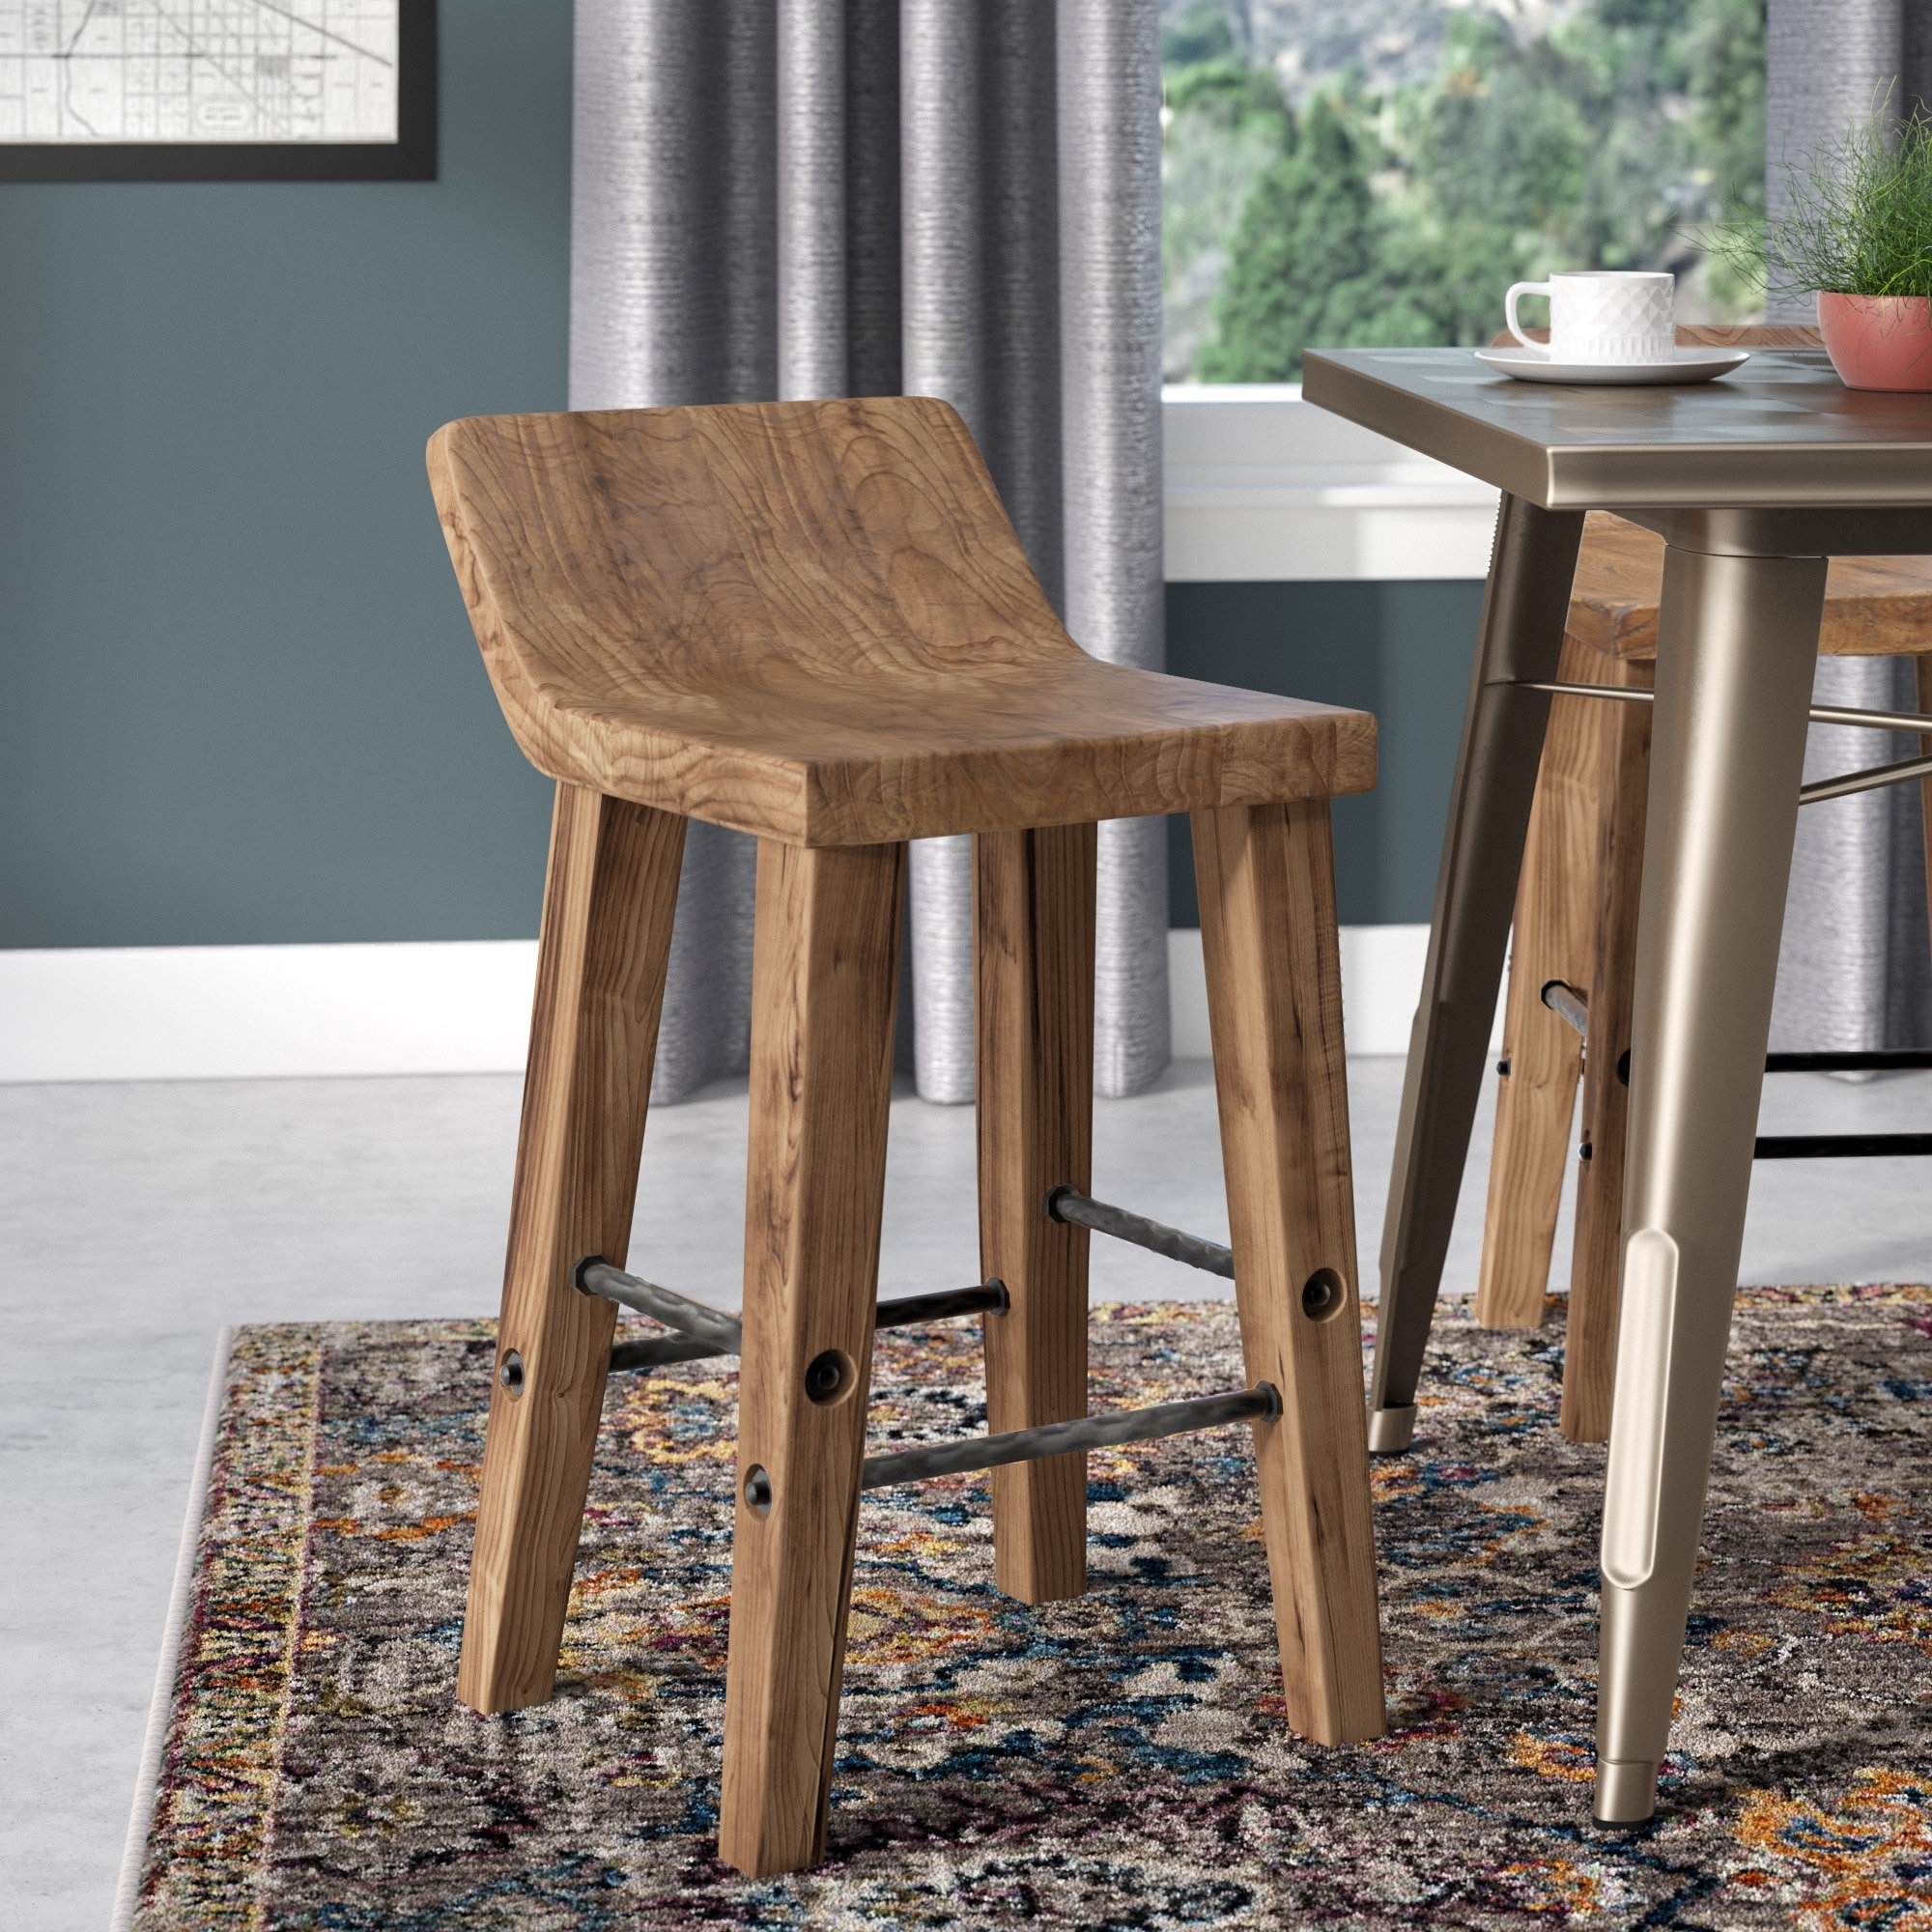 Well Liked Trent Austin Design Feinberg Bar & Counter Stool & Reviews (View 23 of 25)